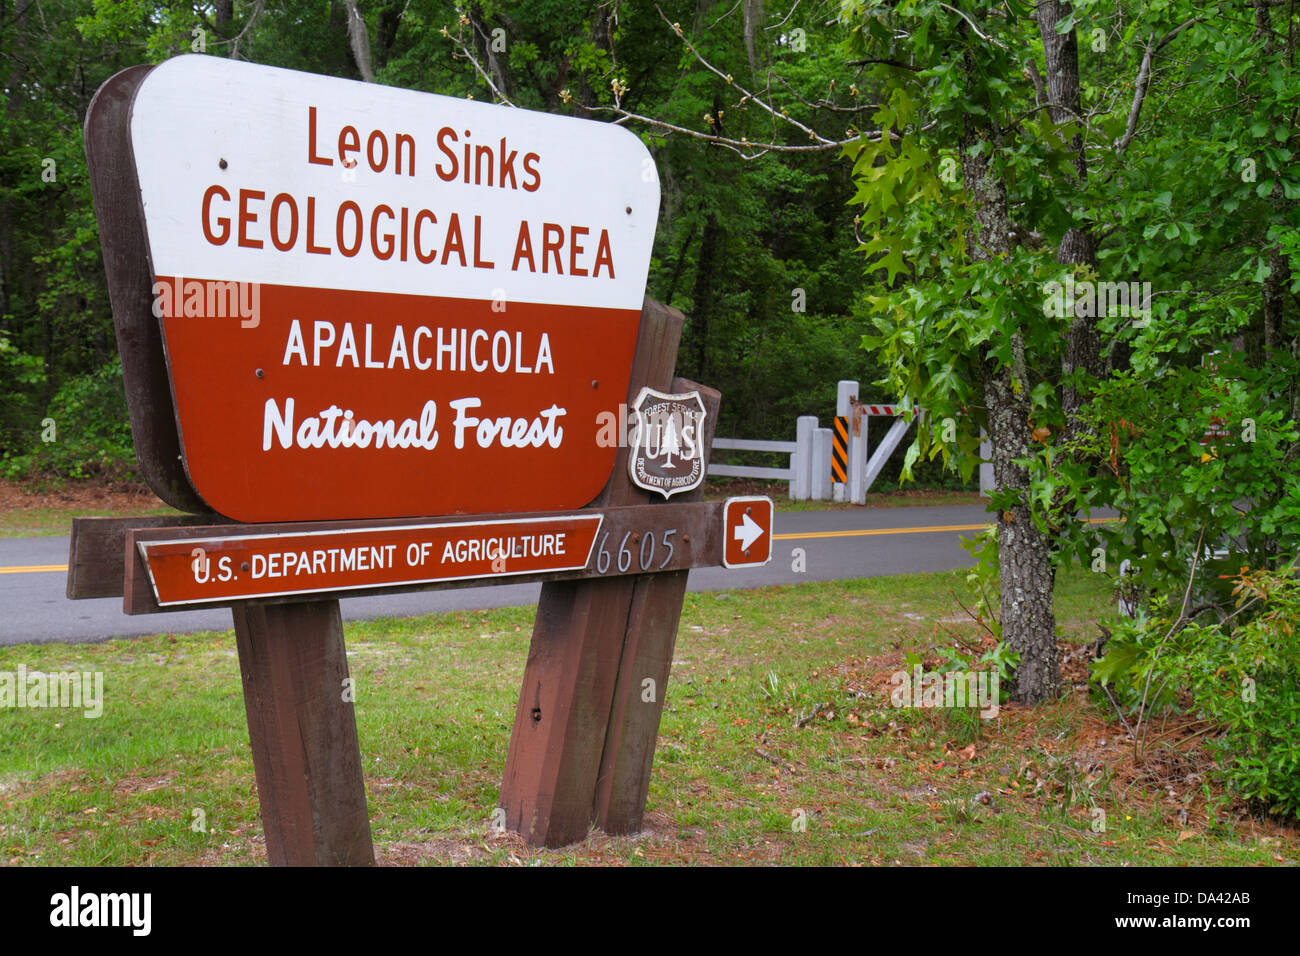 Tallahassee Florida Apalachicola National Forest Leon Sinks sign entrance - Stock Image